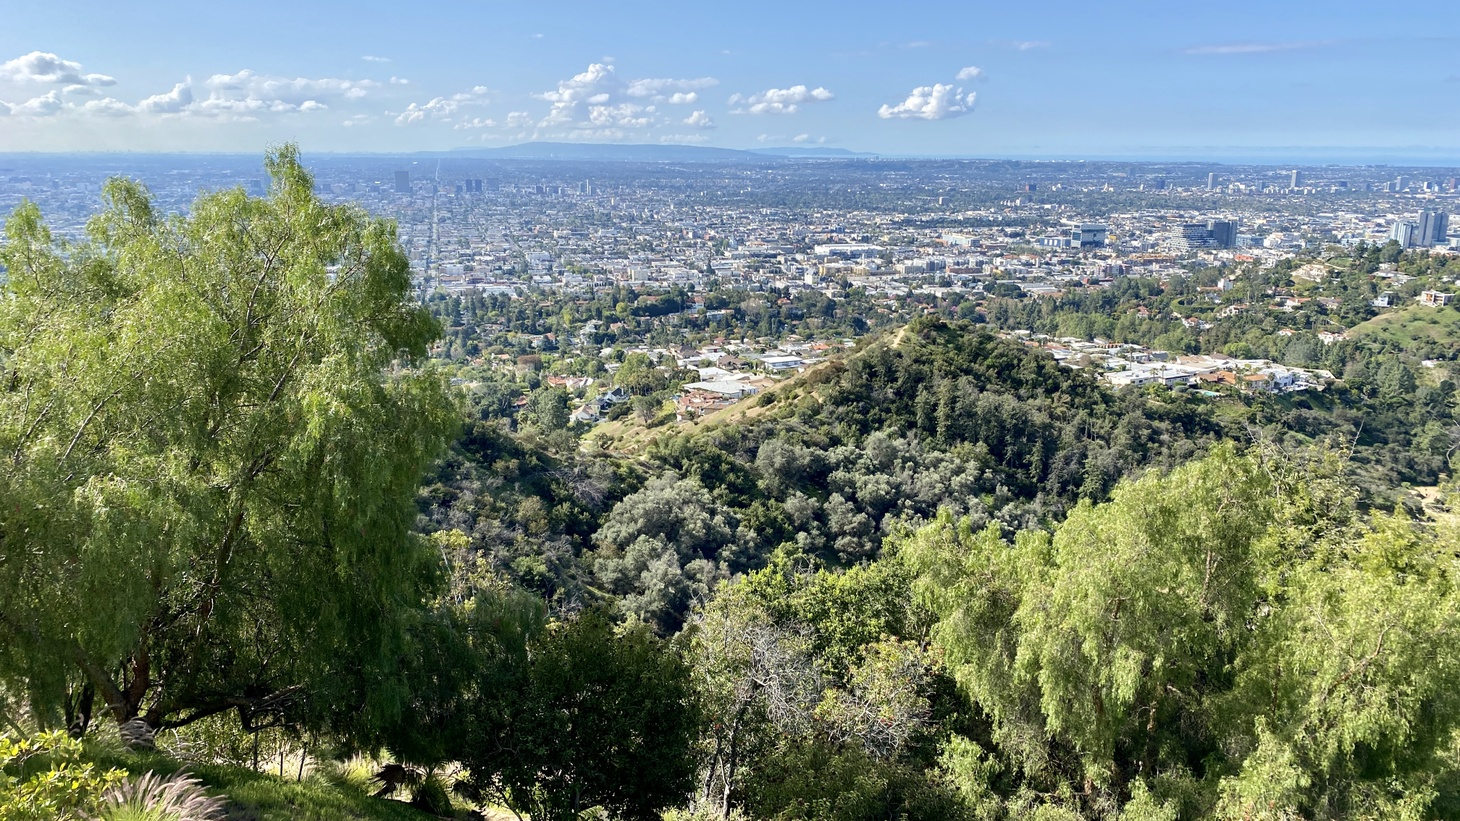 View of Los Angeles from Griffith Park, March 21, 2020.